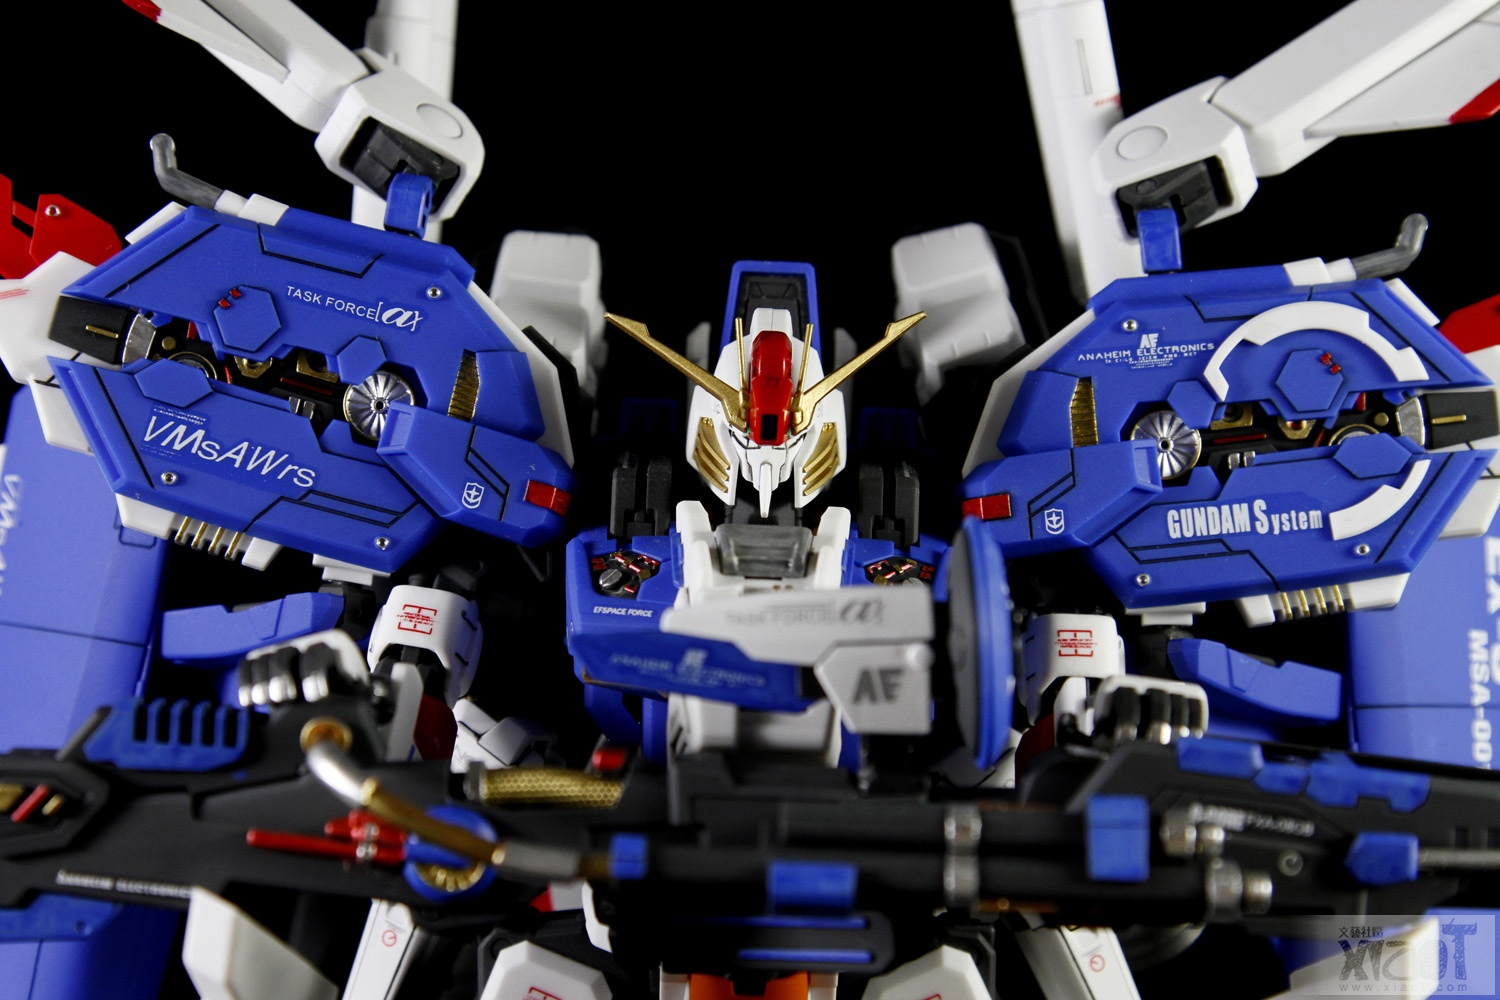 Mg 1 100 Msa 0011 Ext Ex S Gundam Improved Work By Tongxin Full Photoreview Wip Too Big Or Wallpaper Size Images Gunjap